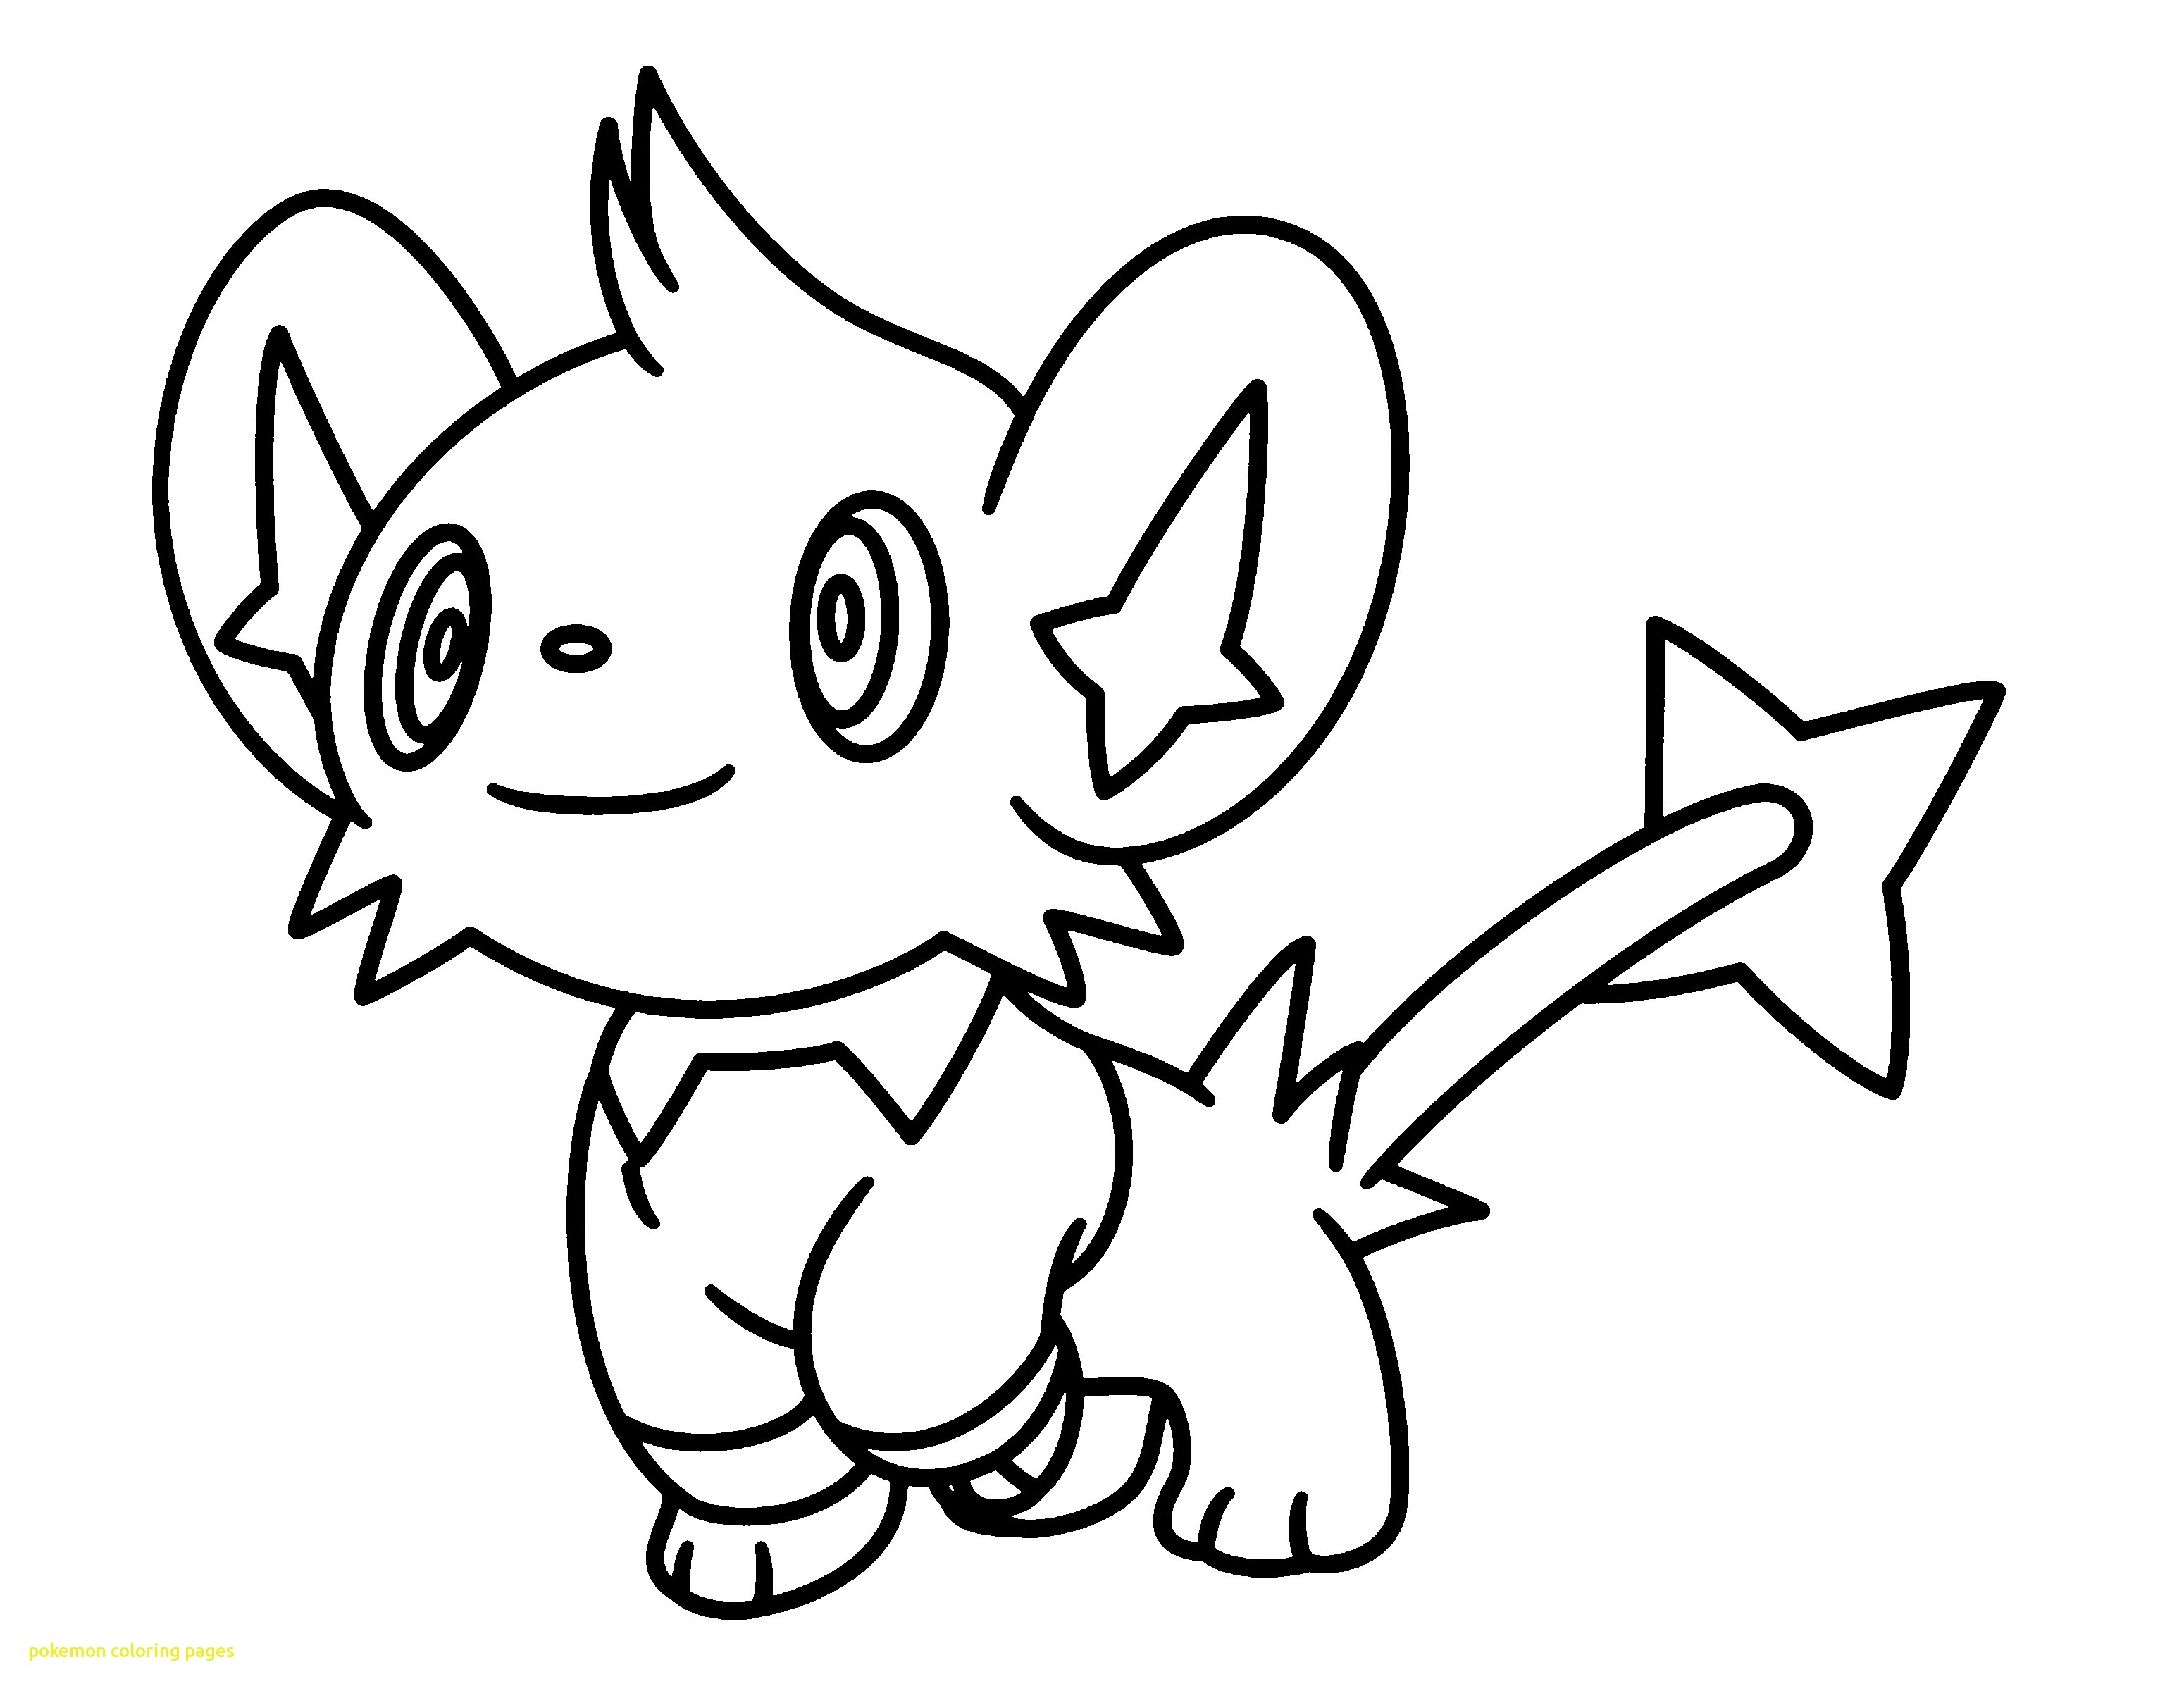 3100x2400 Fresh Umbreon Coloring Pages Google Search Projects To Try Free